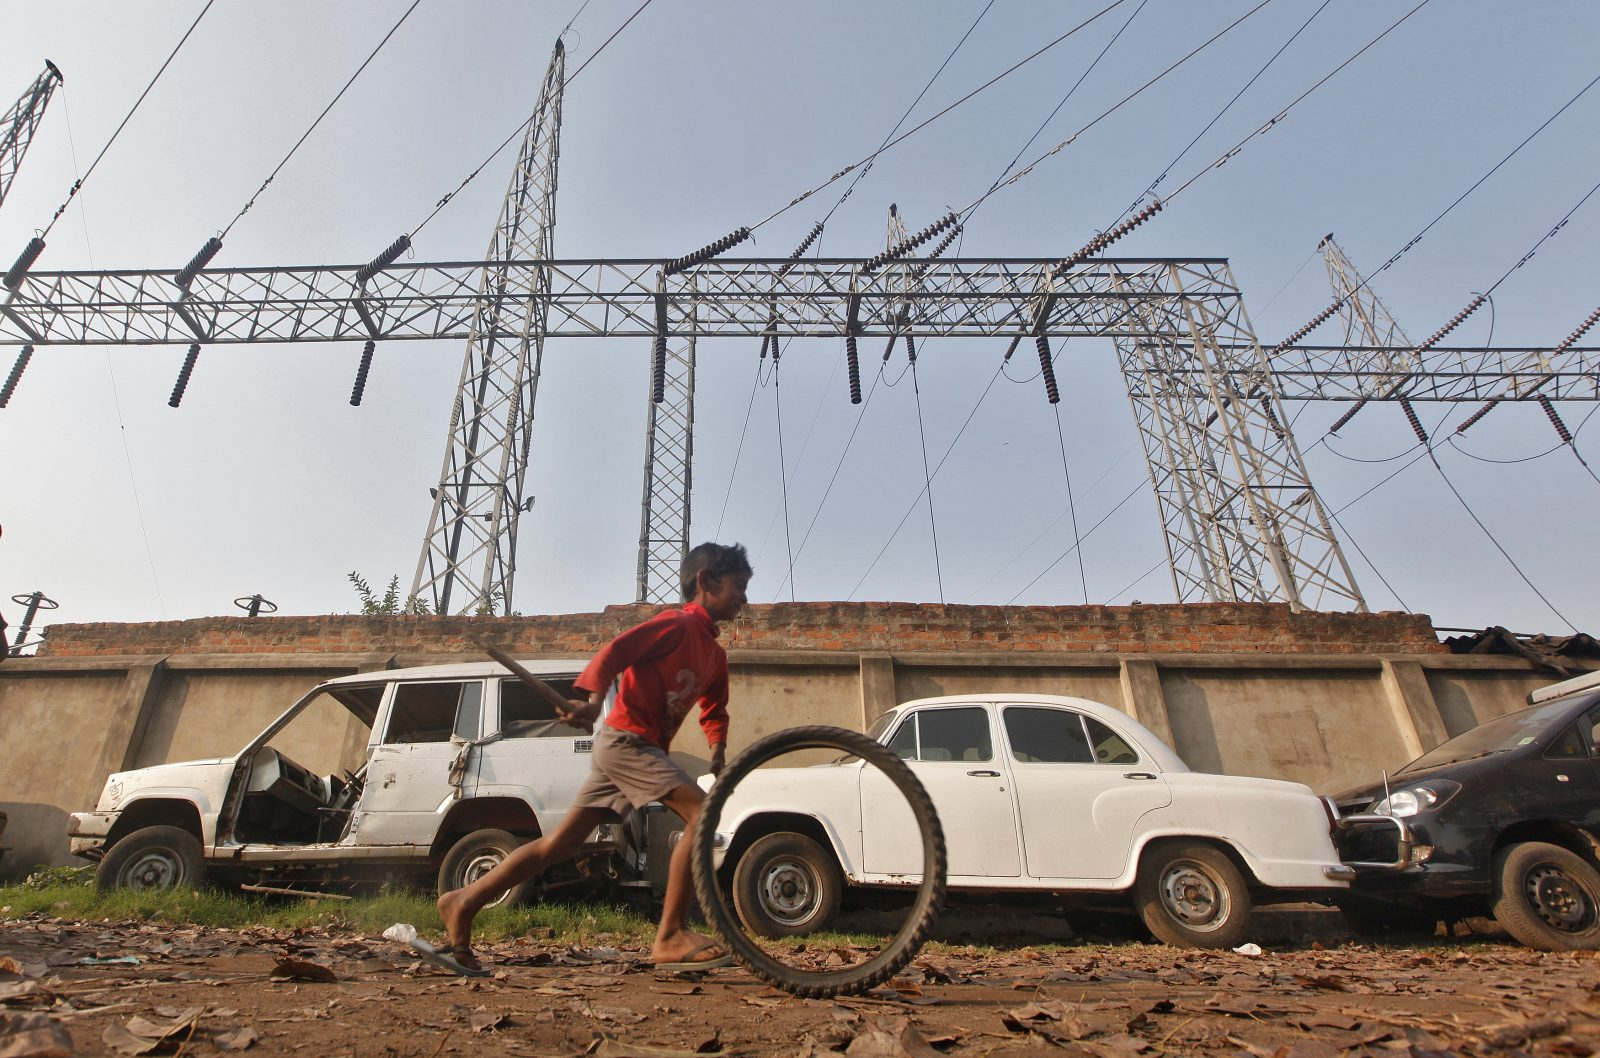 A boy plays with a tyre in front of electric pylons installed at a power house in Kolkata February 21, 2013. India's Finance Minister Palaniappan Chidambaram will present one of the most highly anticipated budgets of recent years, a blueprint for austerity that forms the centrepiece of India's efforts to stave off a ratings downgrade. Investors will watch closely to see whether he will fulfil his promise of fiscal prudence.